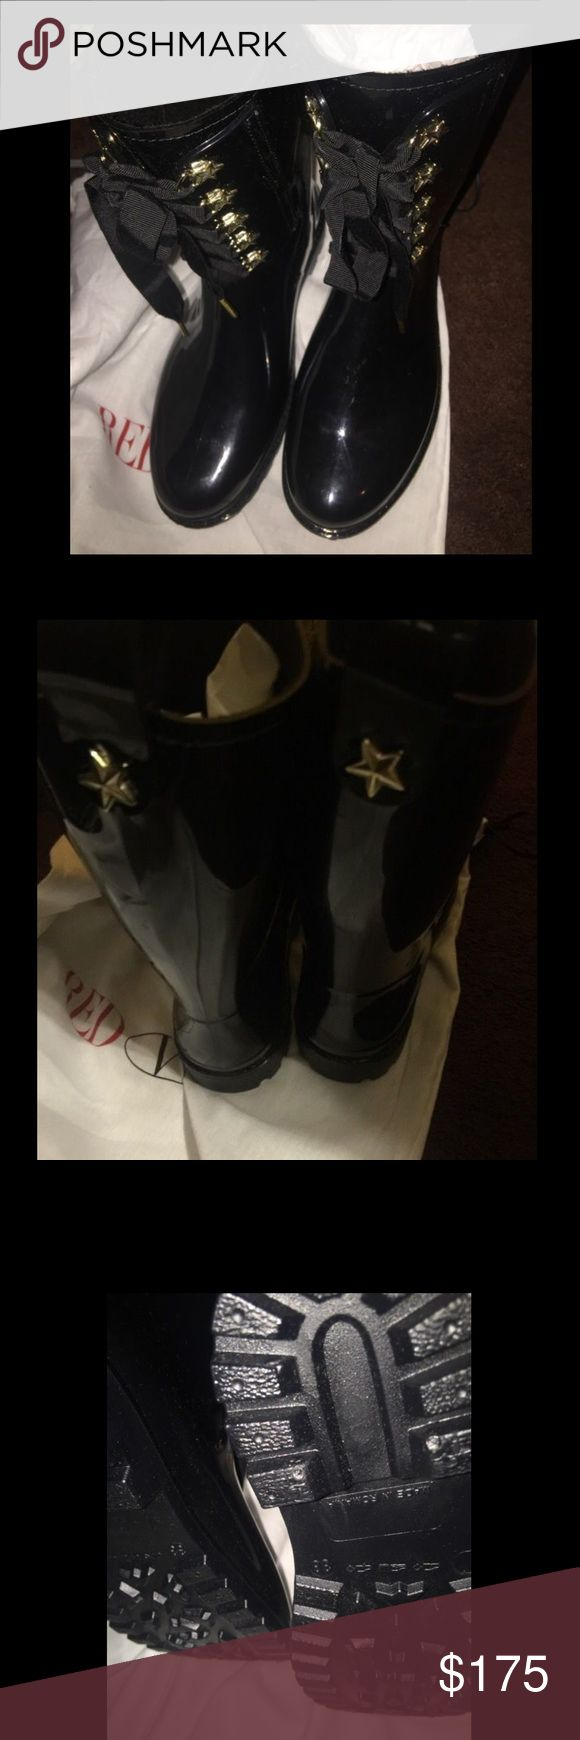 Red Valentino boots New, rain boots, dust bag no box, size 38 RED Valentino Shoes Winter & Rain Boots